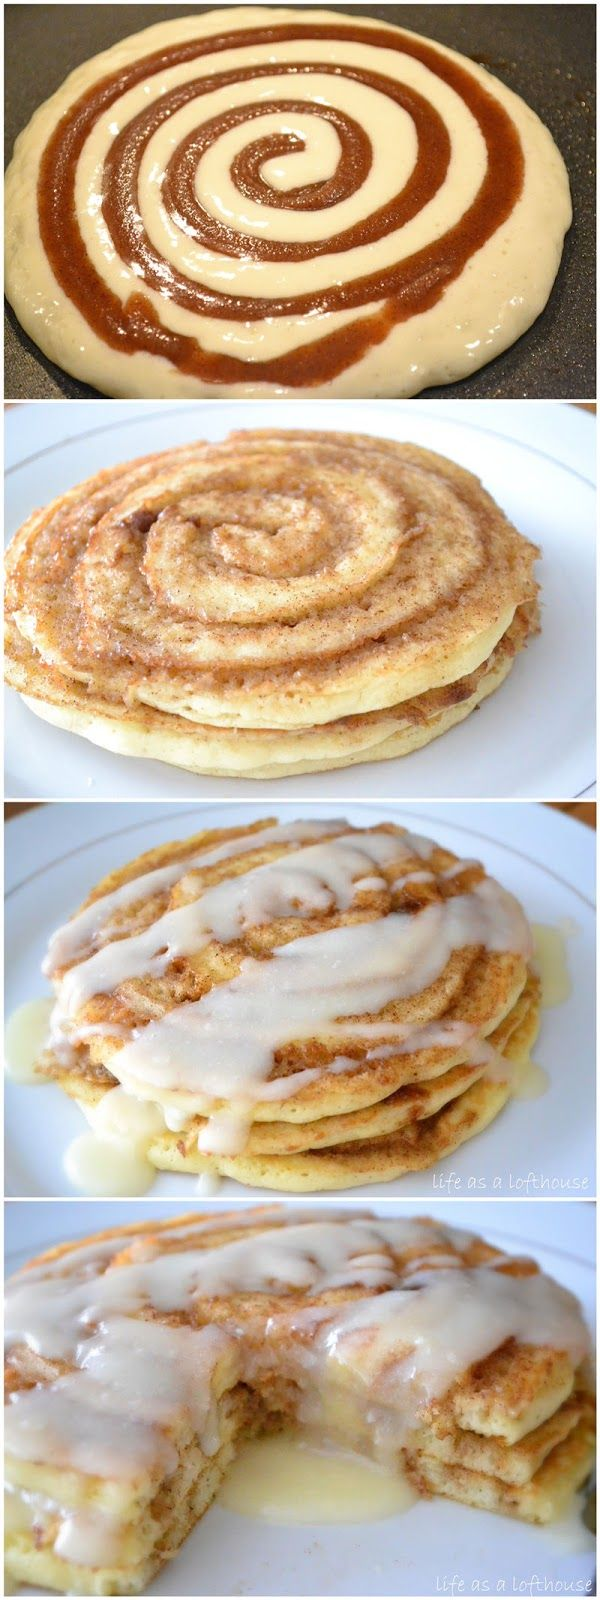 toptenlook: Cinnamon Roll Pancakes OMG, yum!! And such simple everyday ingredients!!: toptenlook: Cinnamon Roll Pancakes OMG, yum!! And such simple everyday ingredients!!